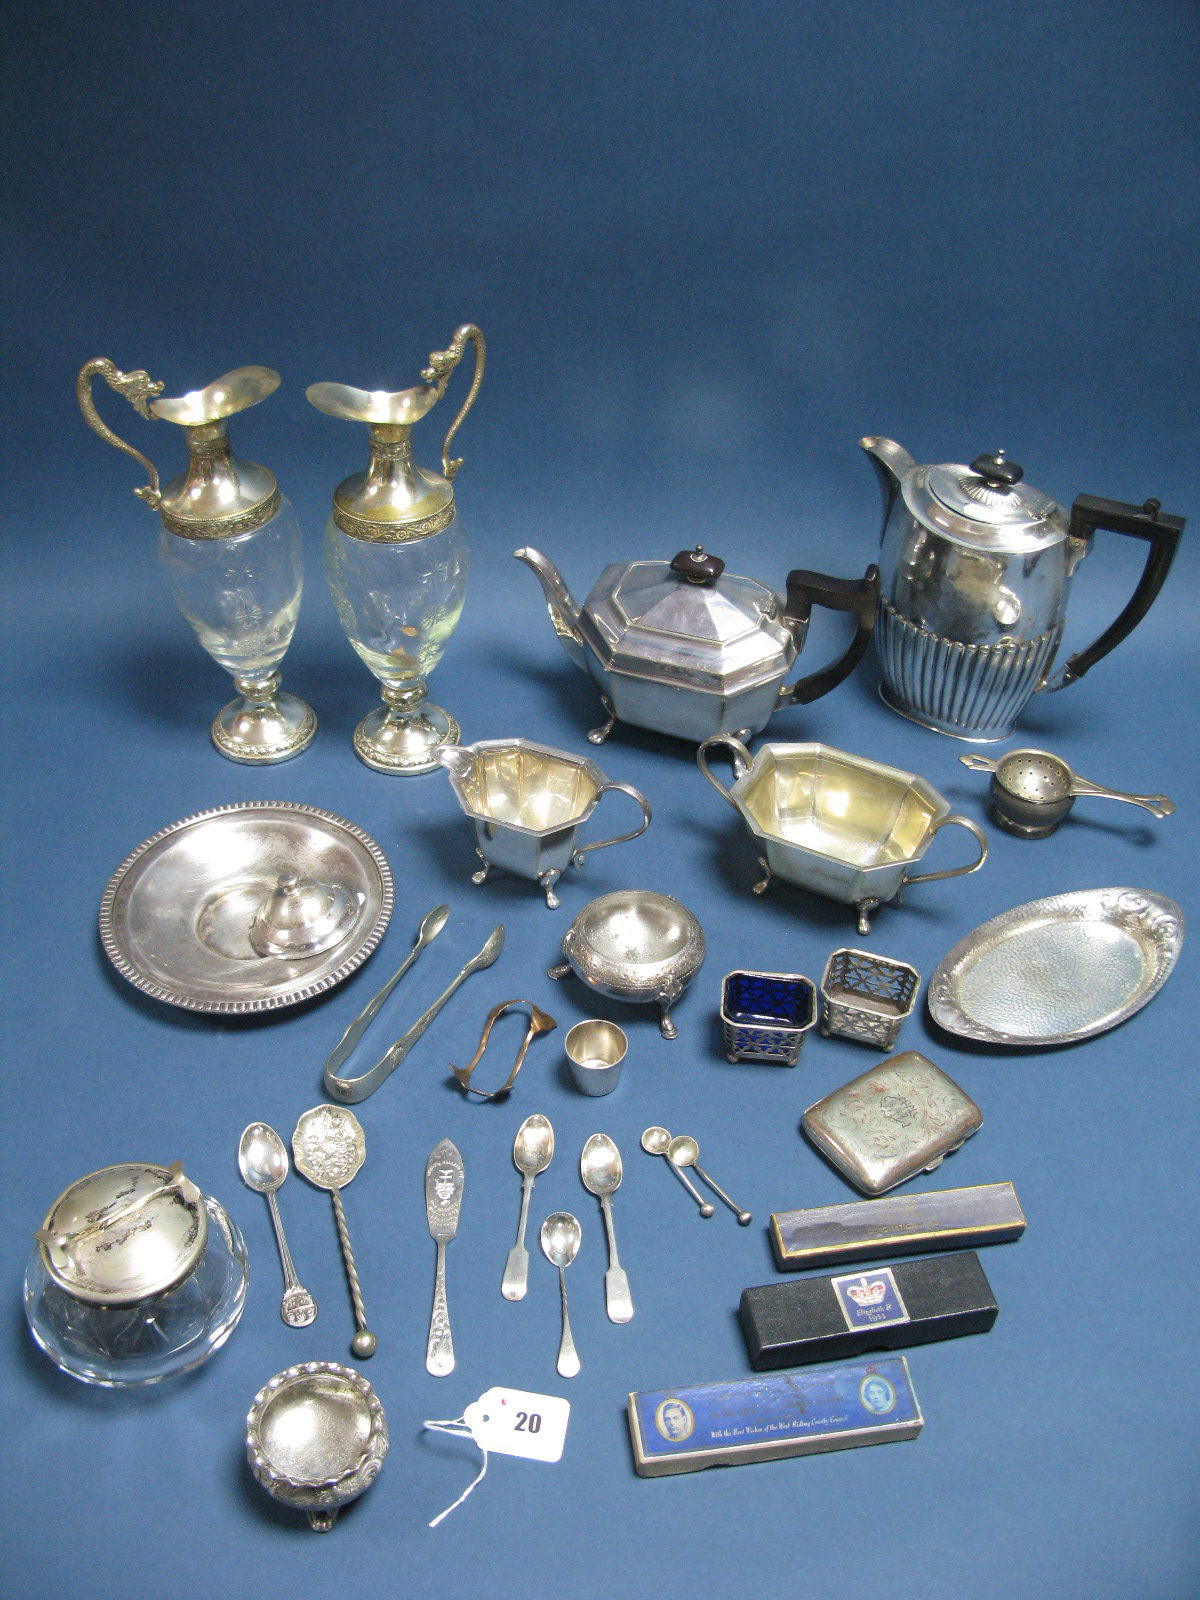 Lot 20 - Assorted Plated Ware, including three piece tea set, sugar pot, pair of ewers, salts, sugar tongs,